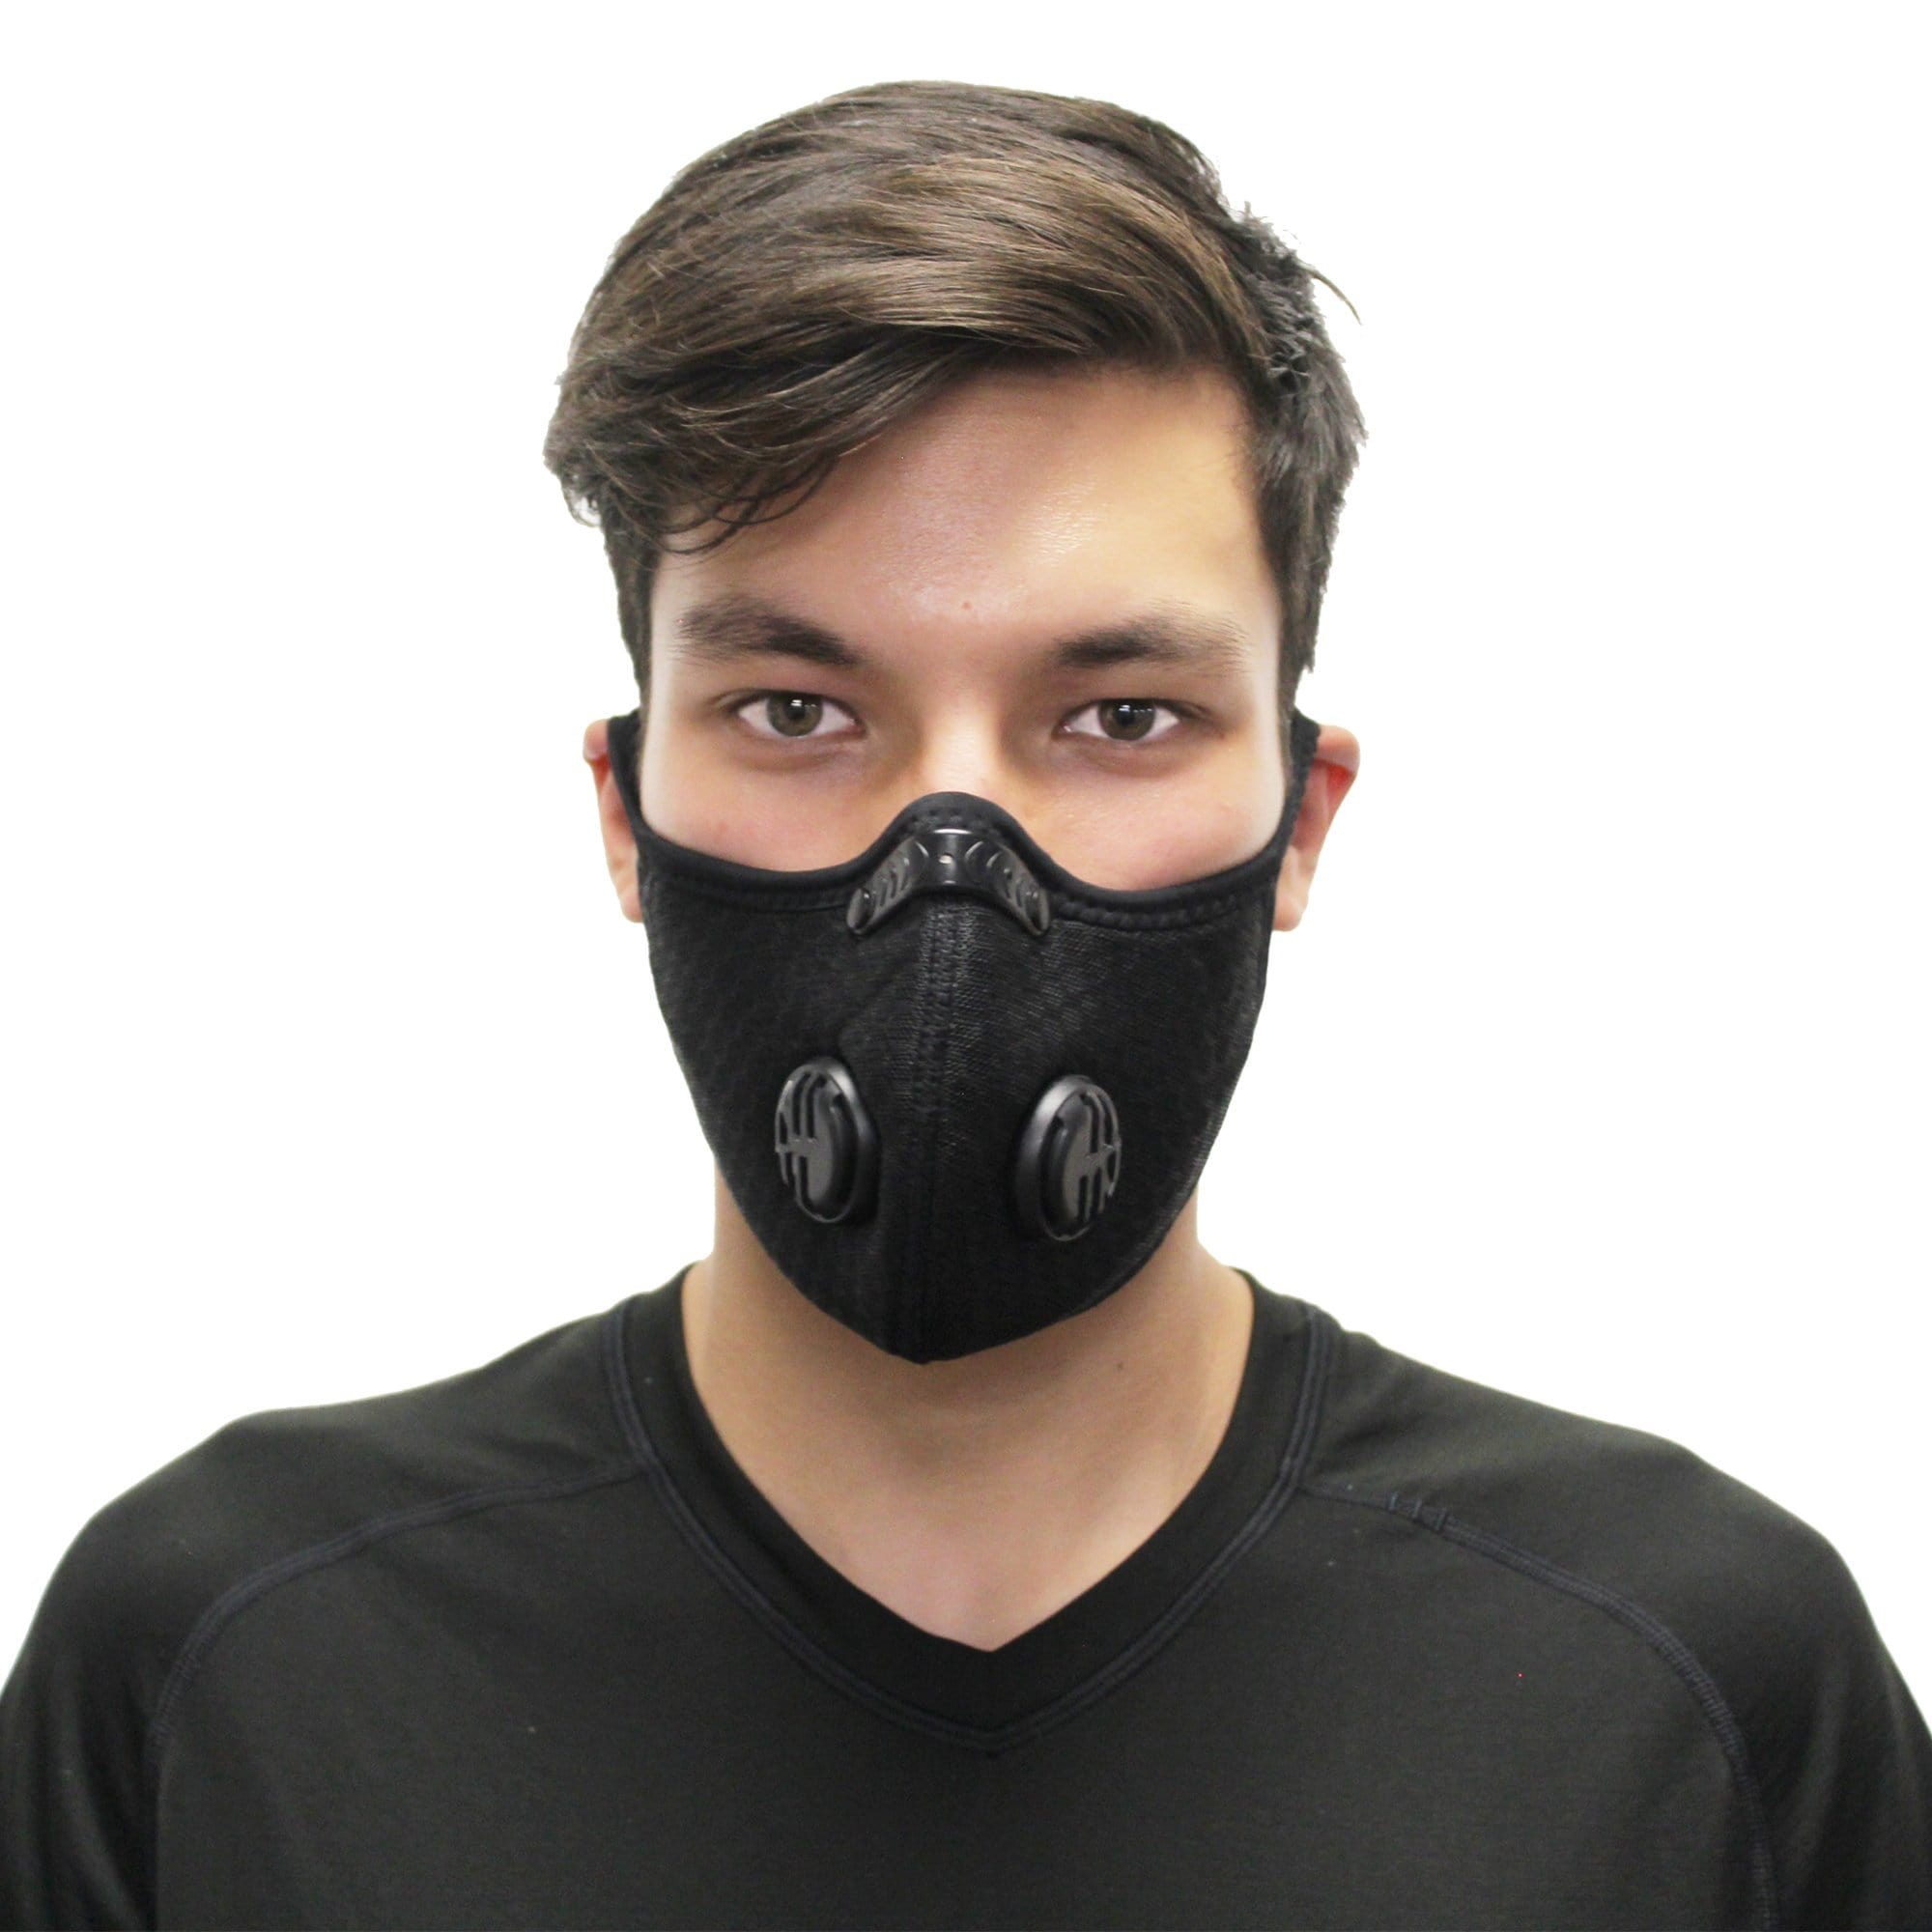 Sports Mask with KN95 Filter and Exhalation Valves